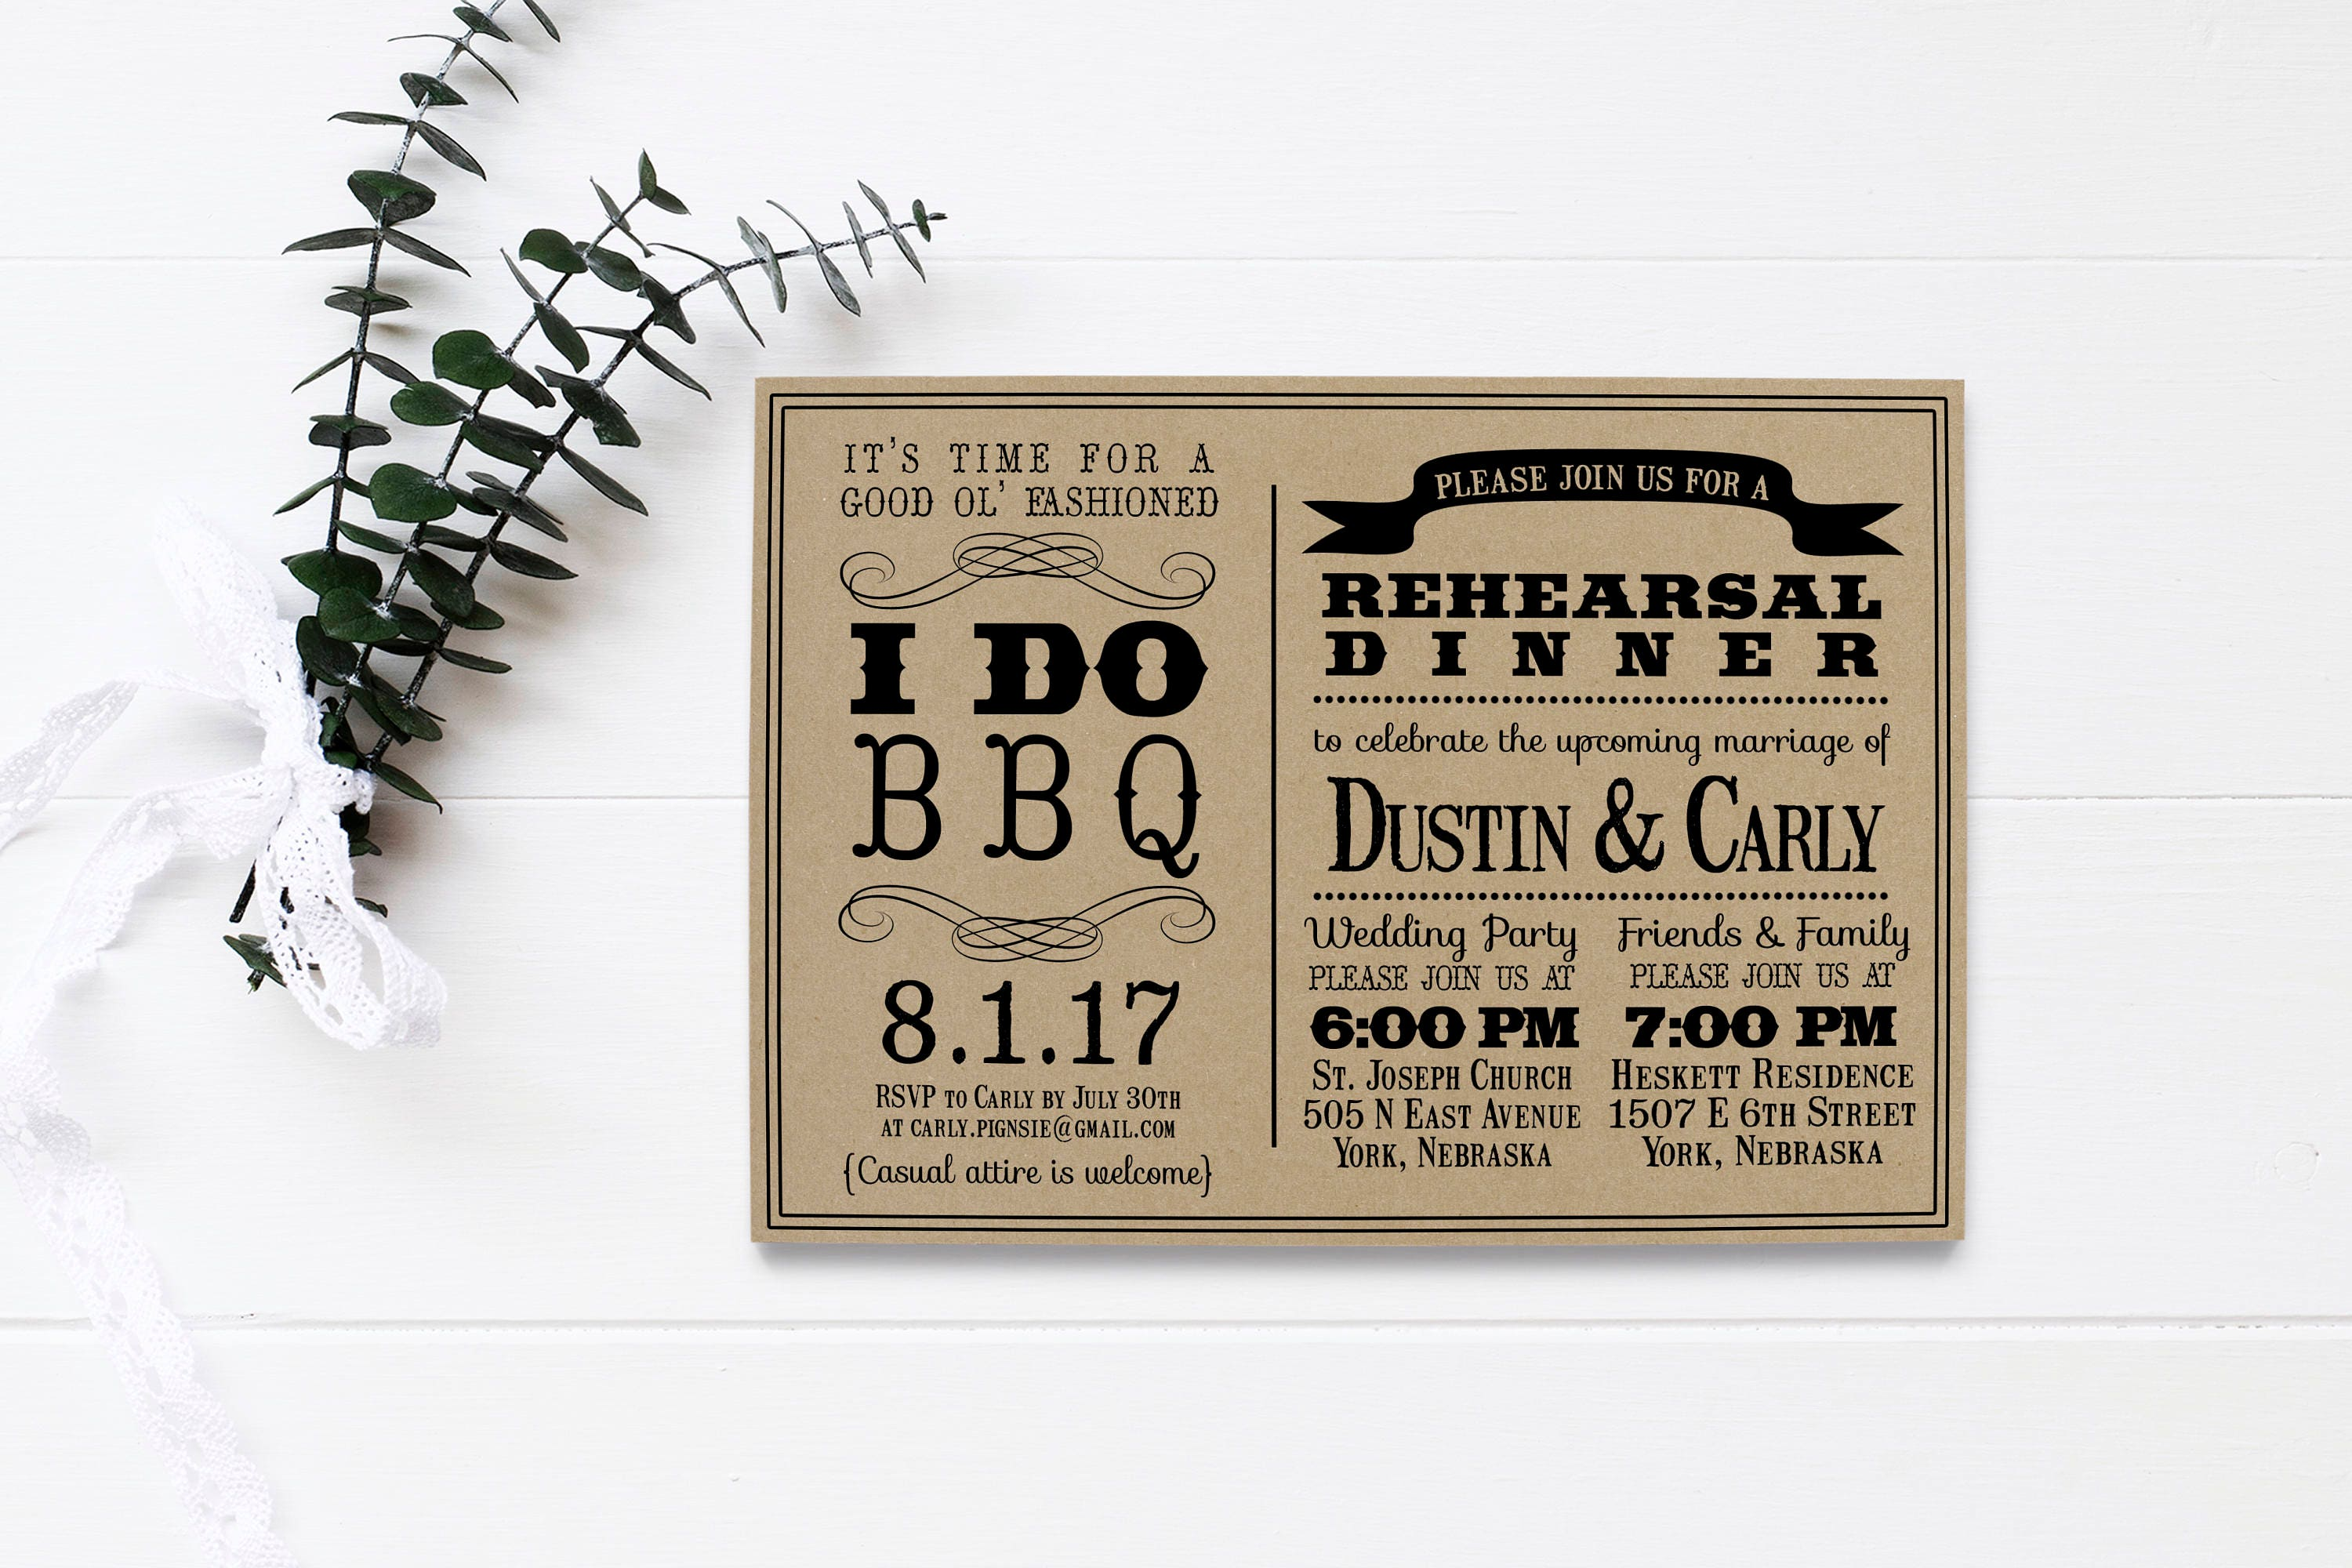 Who Do You Invite To Wedding Rehearsal Dinner: I Do BBQ Invitation Wedding Rehearsal Dinner DIY Printable